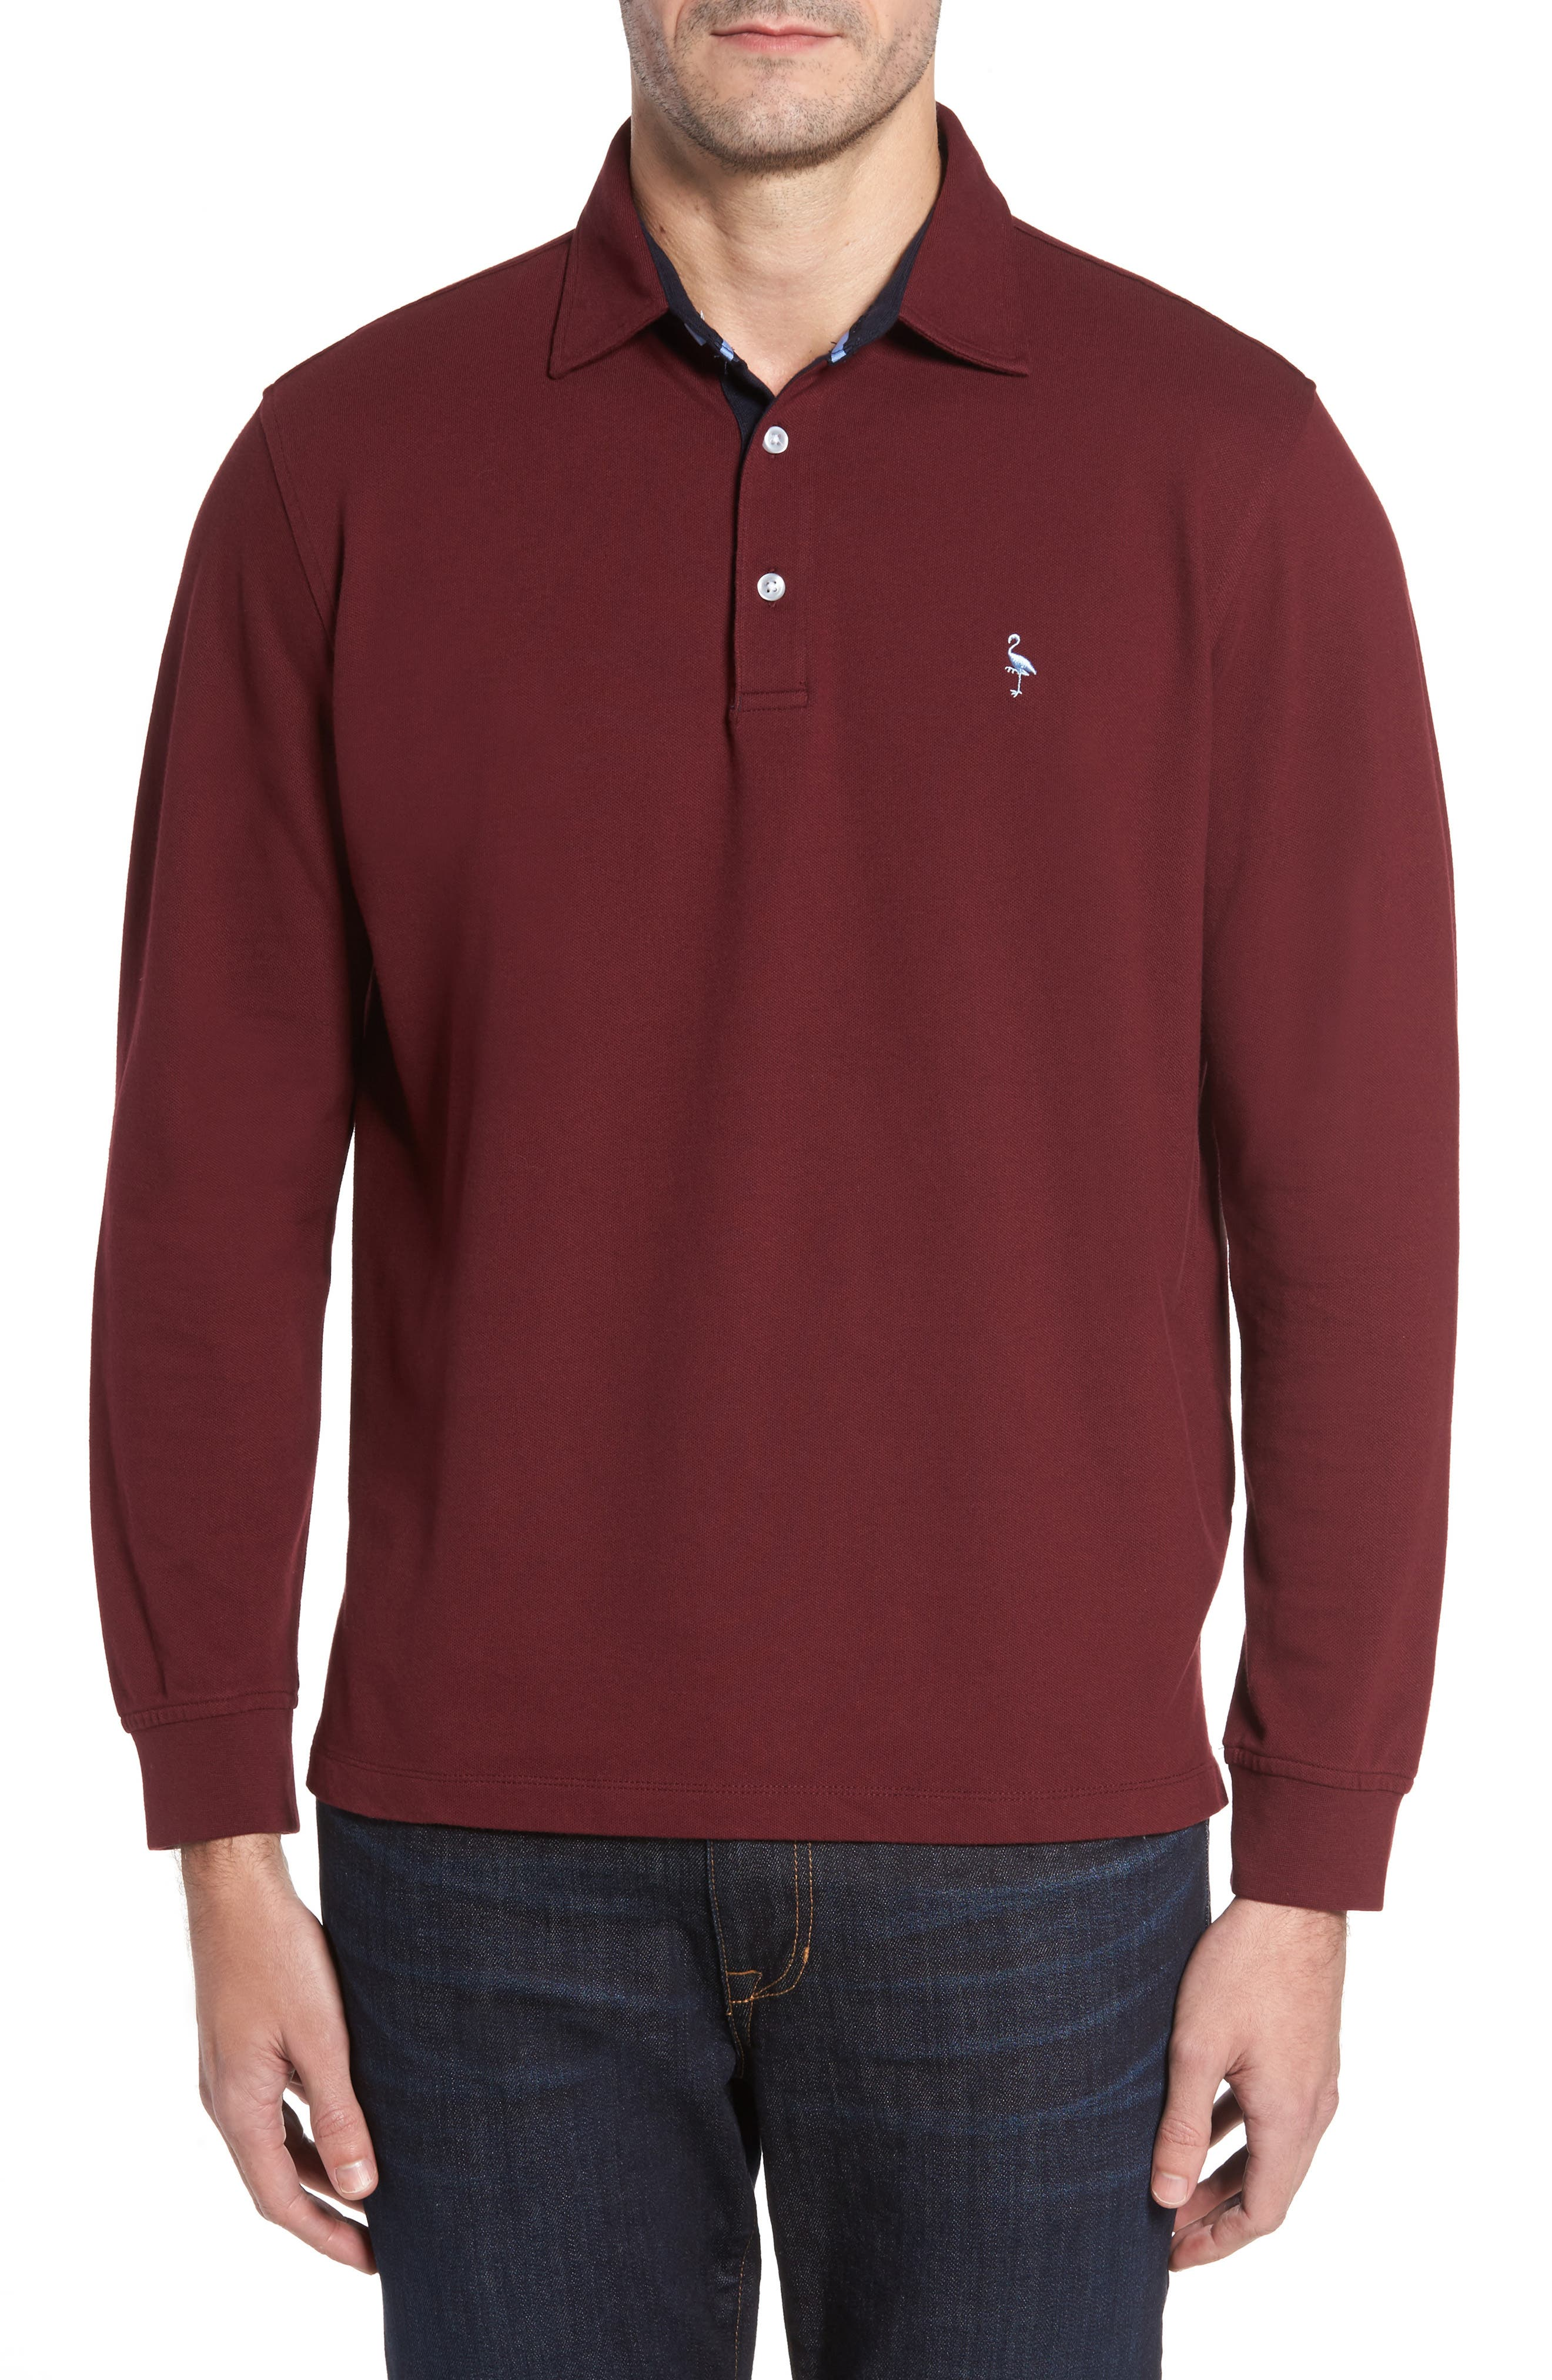 Main Image - TailorByrd Two-Tone Piqué Knit Polo